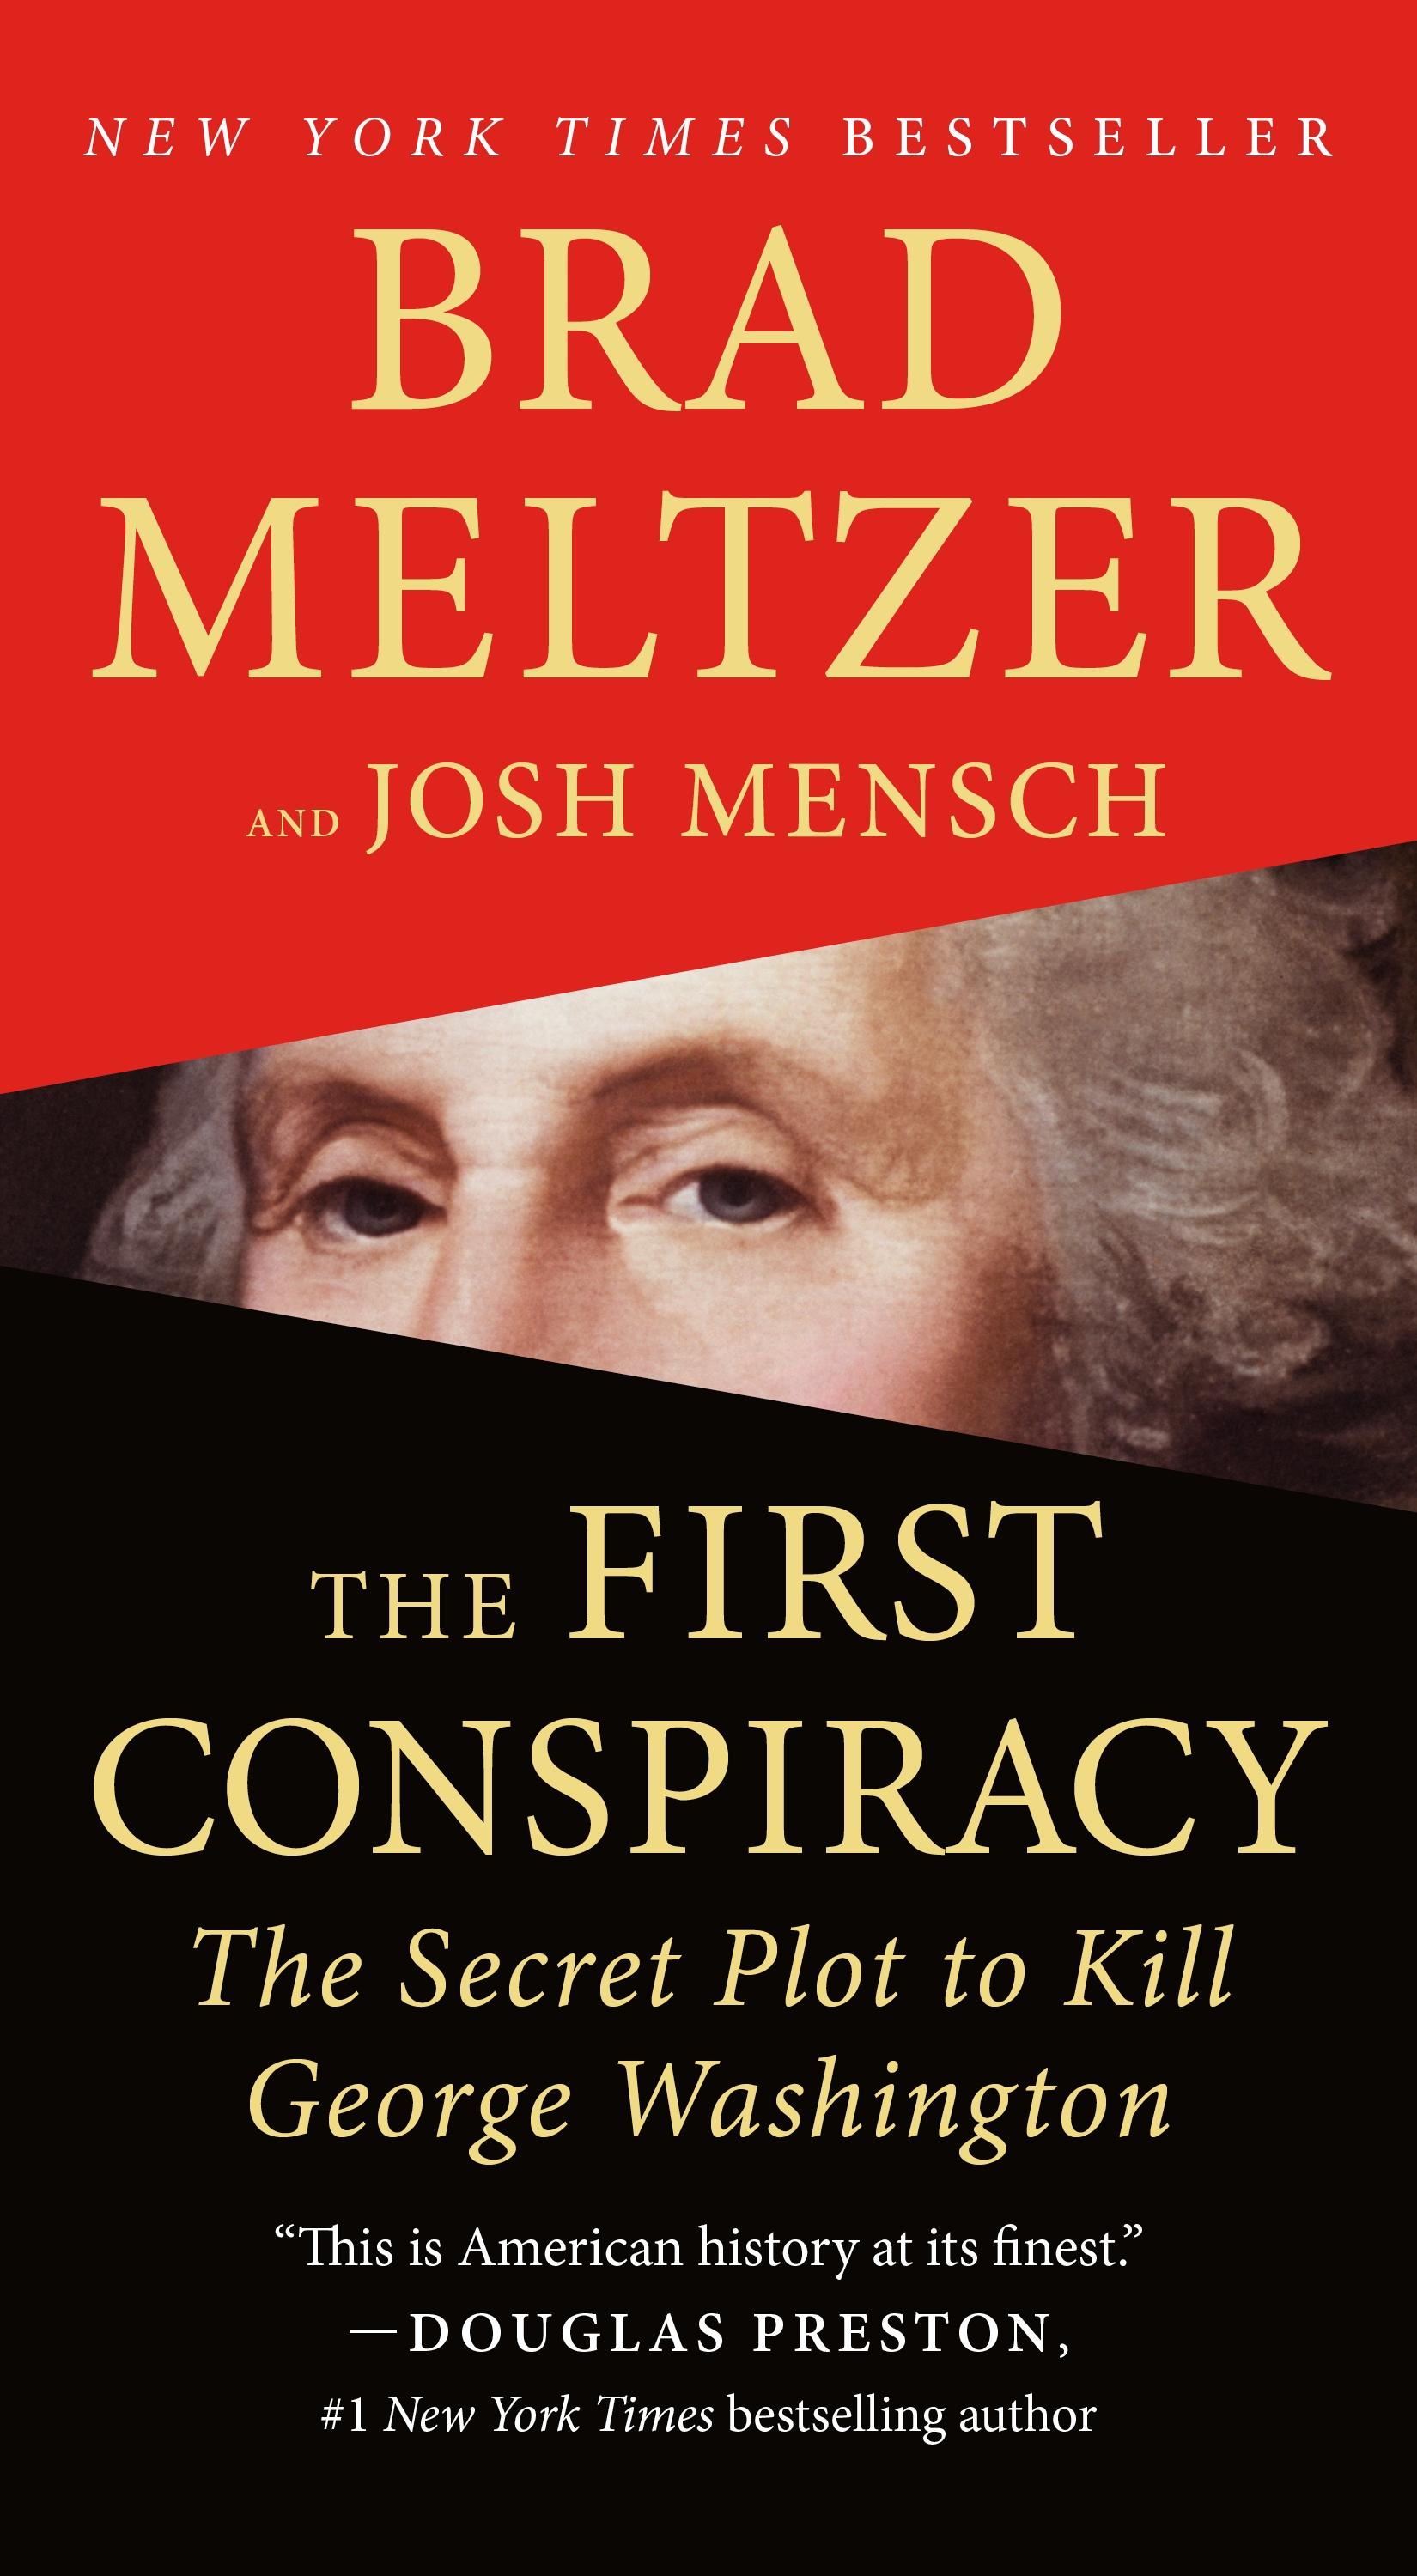 The first conspiracy the secret plot to kill George Washington cover image